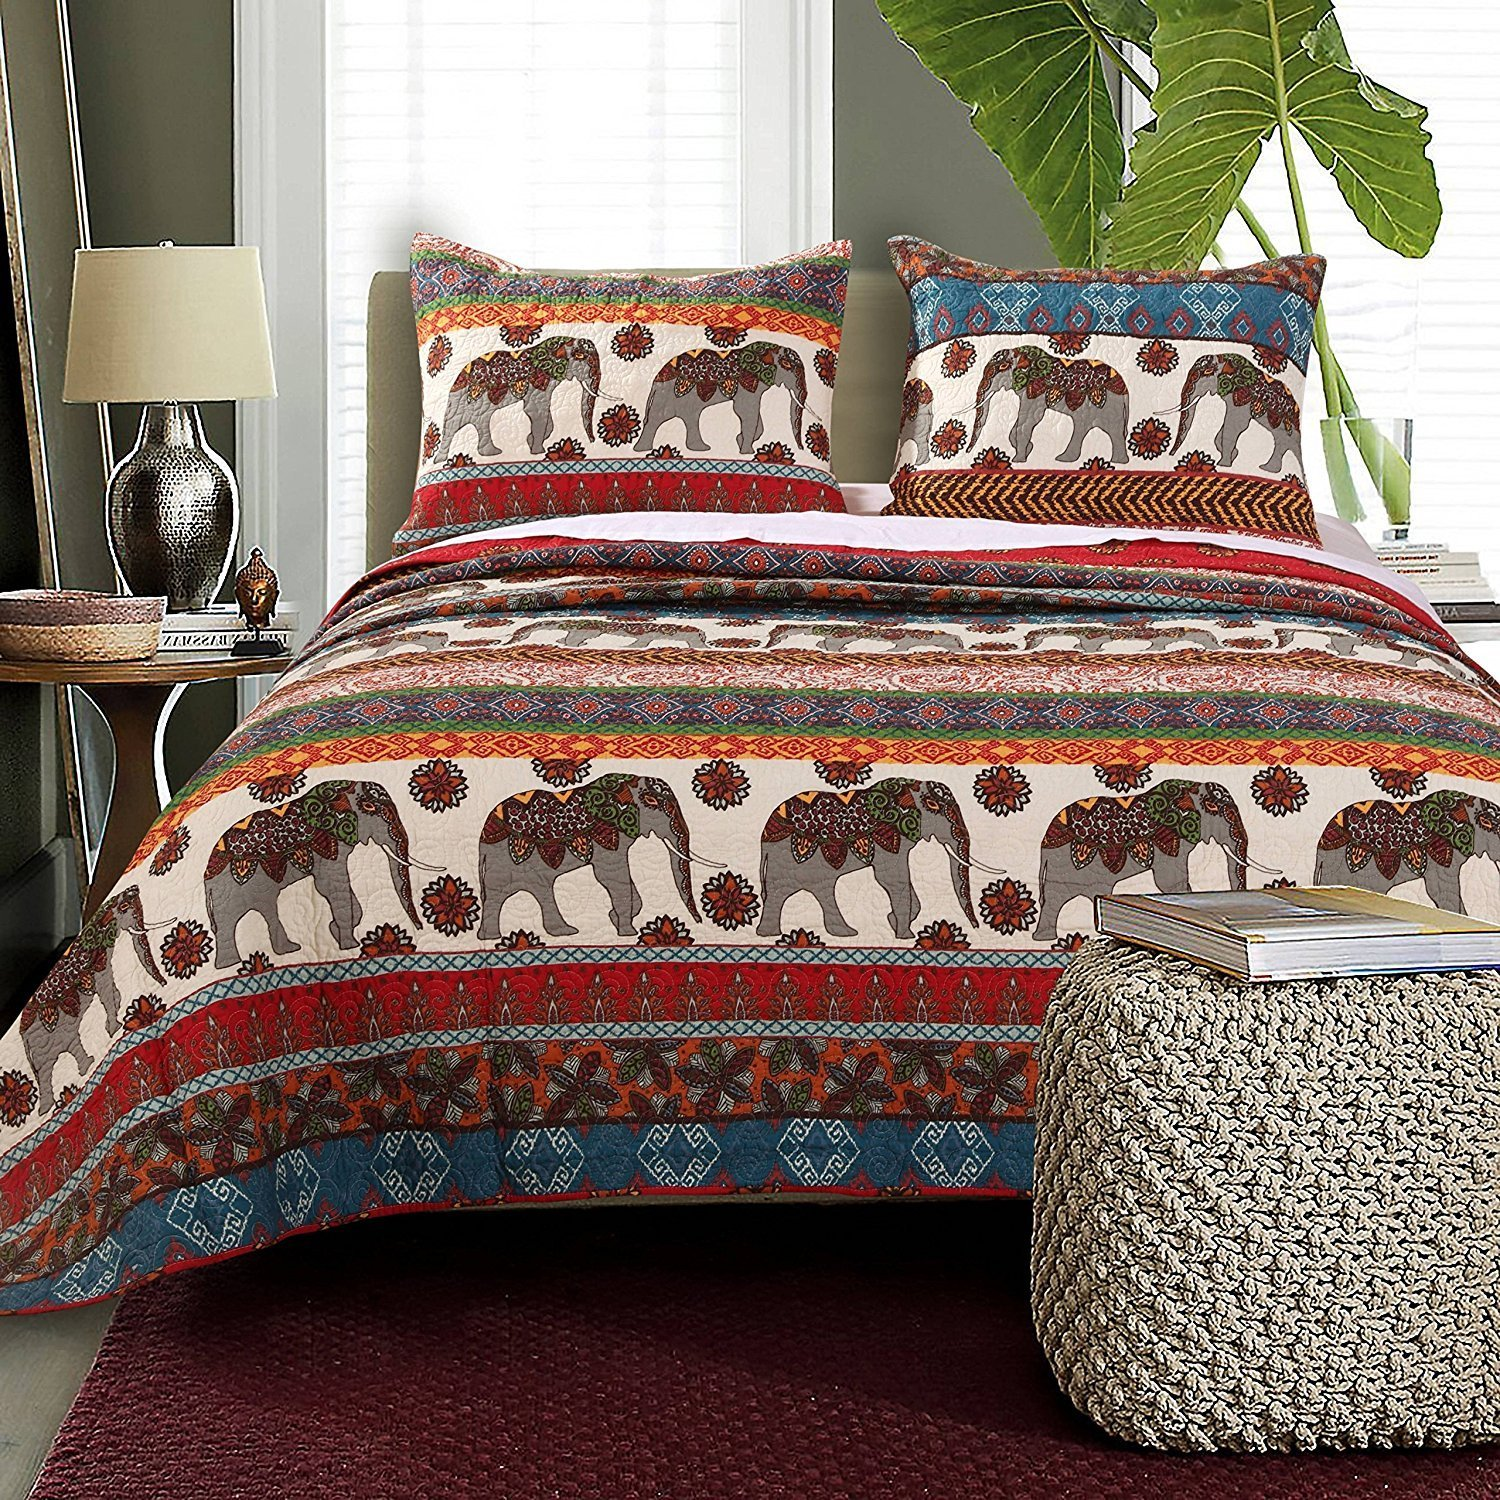 3pc Stunning Grey Red Blue White Full Queen Quilt Set, Polyester, Cotton, Elephant Themed Bedding Zoo Animal Floral Trendy Chic Pretty Stylish Bohemian Boho Vibrant, Microfiber